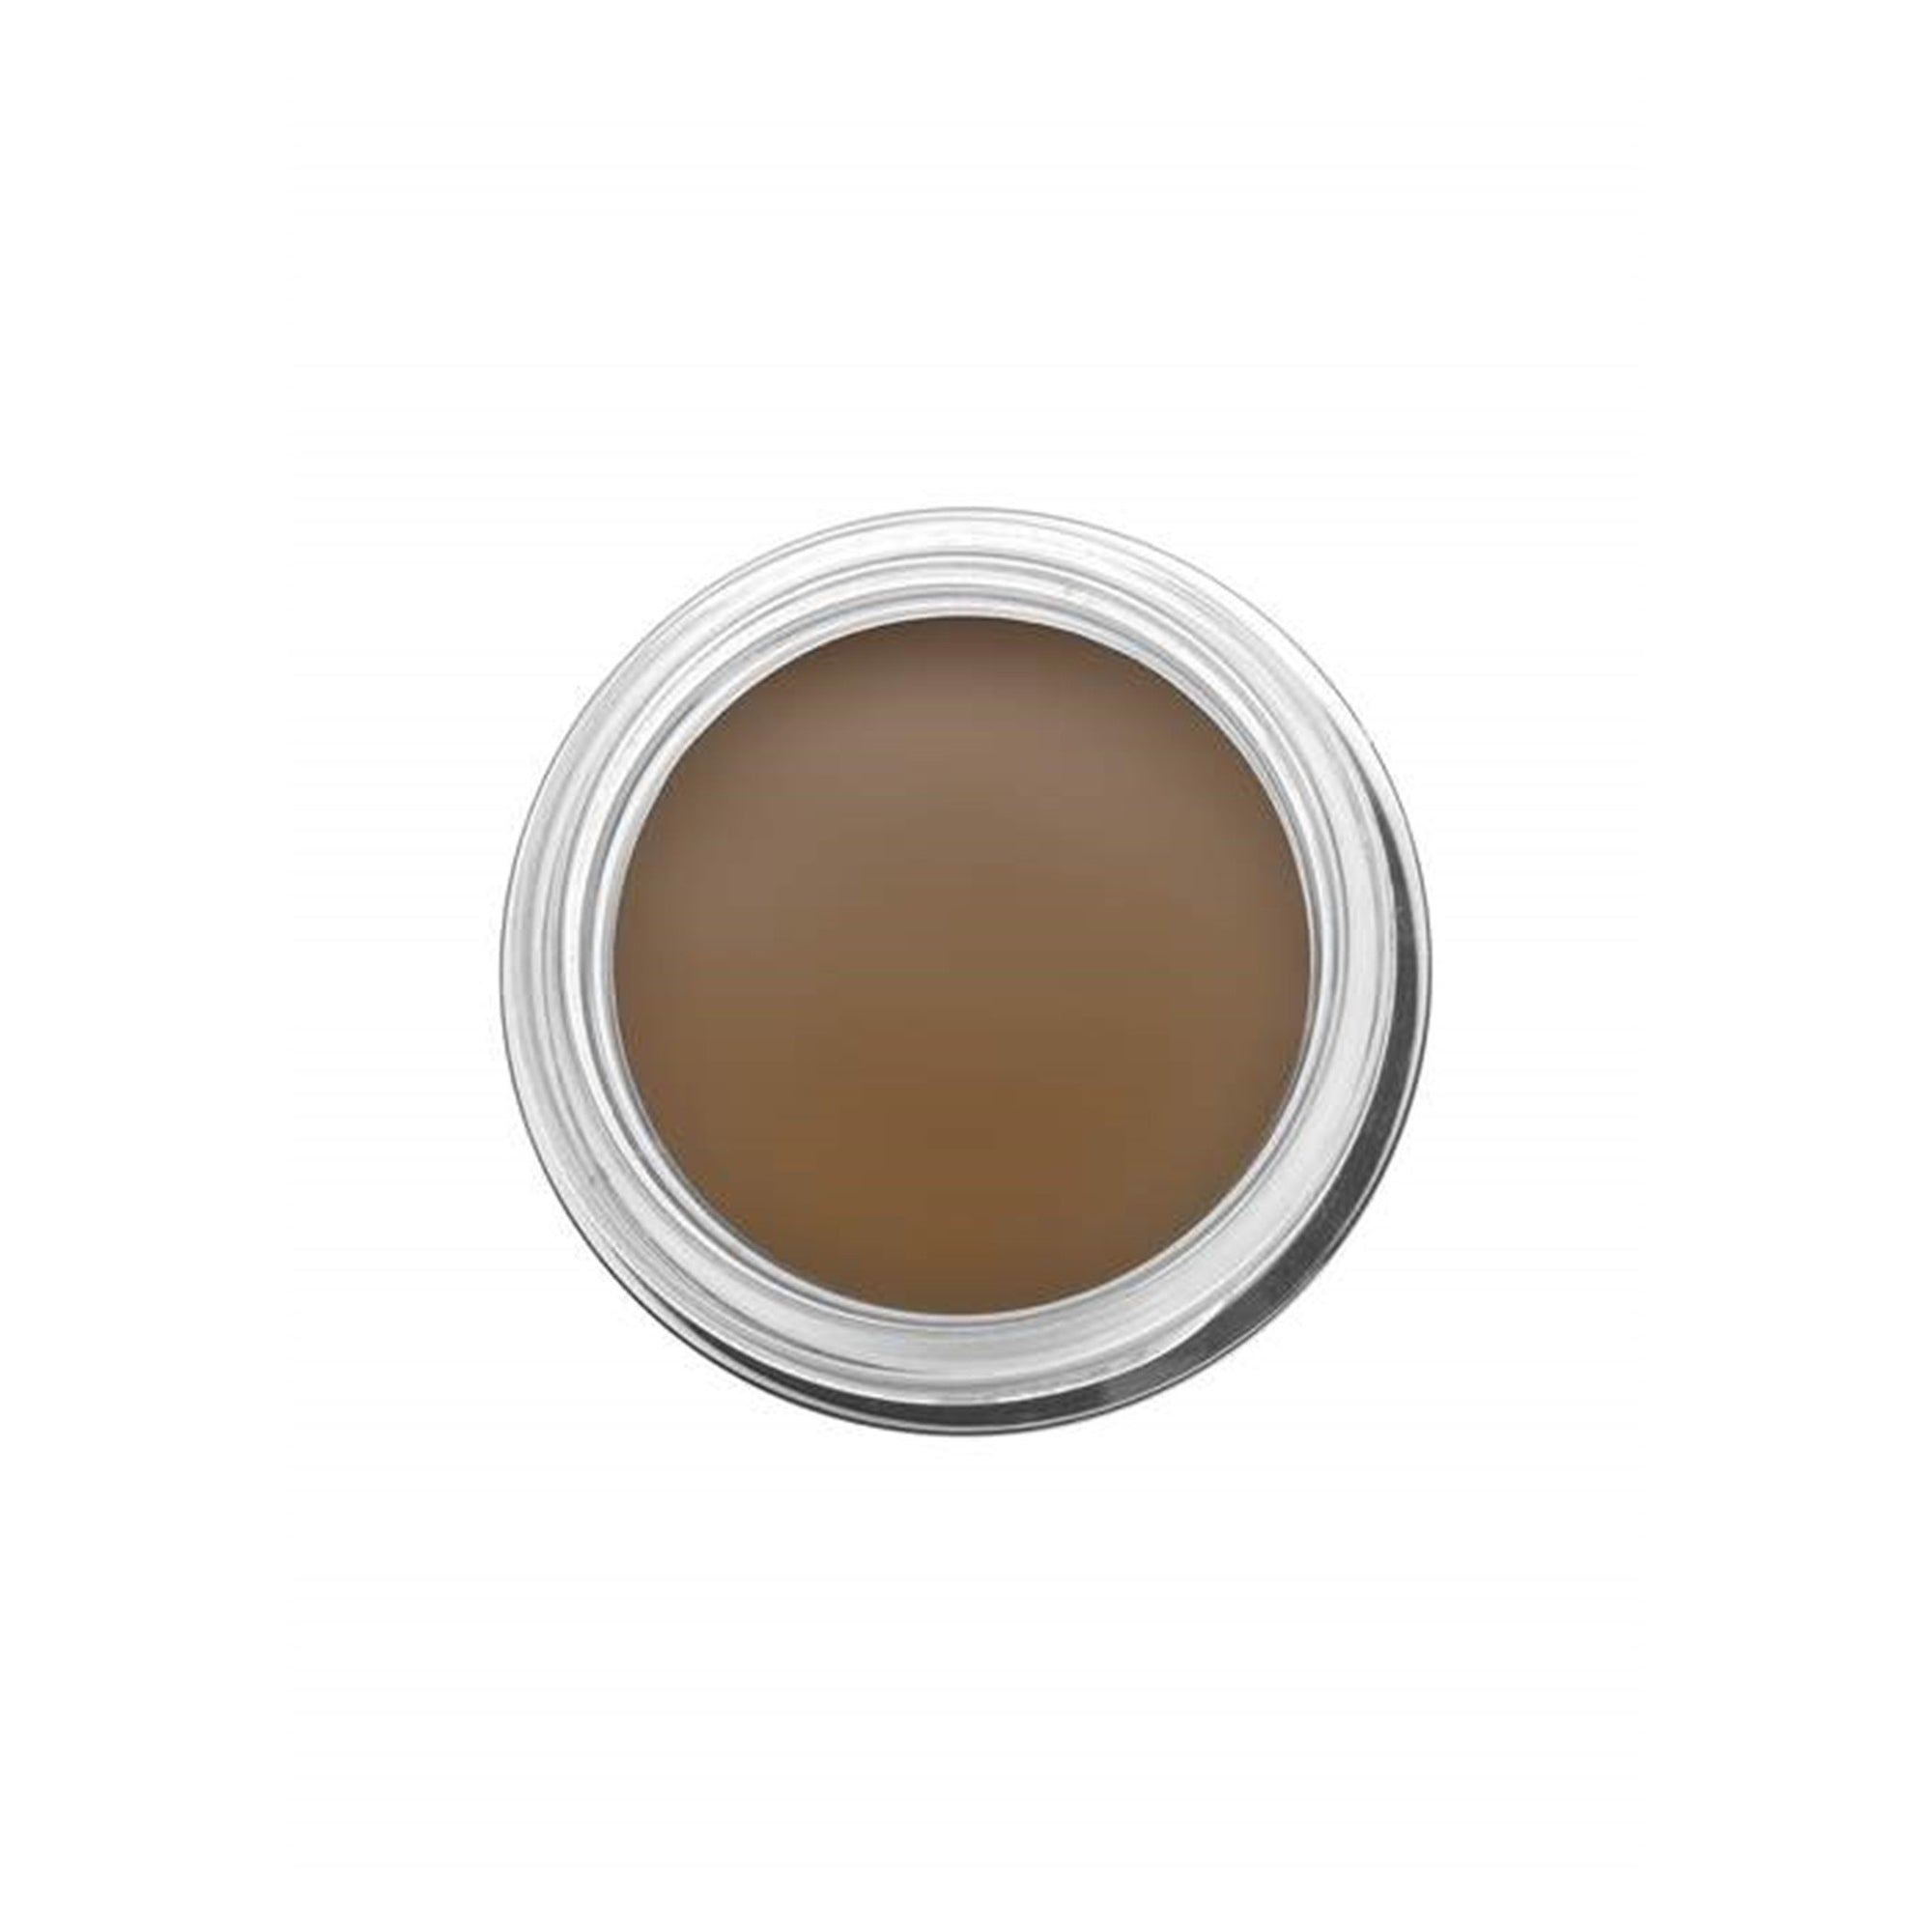 W7 Brow Pomade - Medium Brown